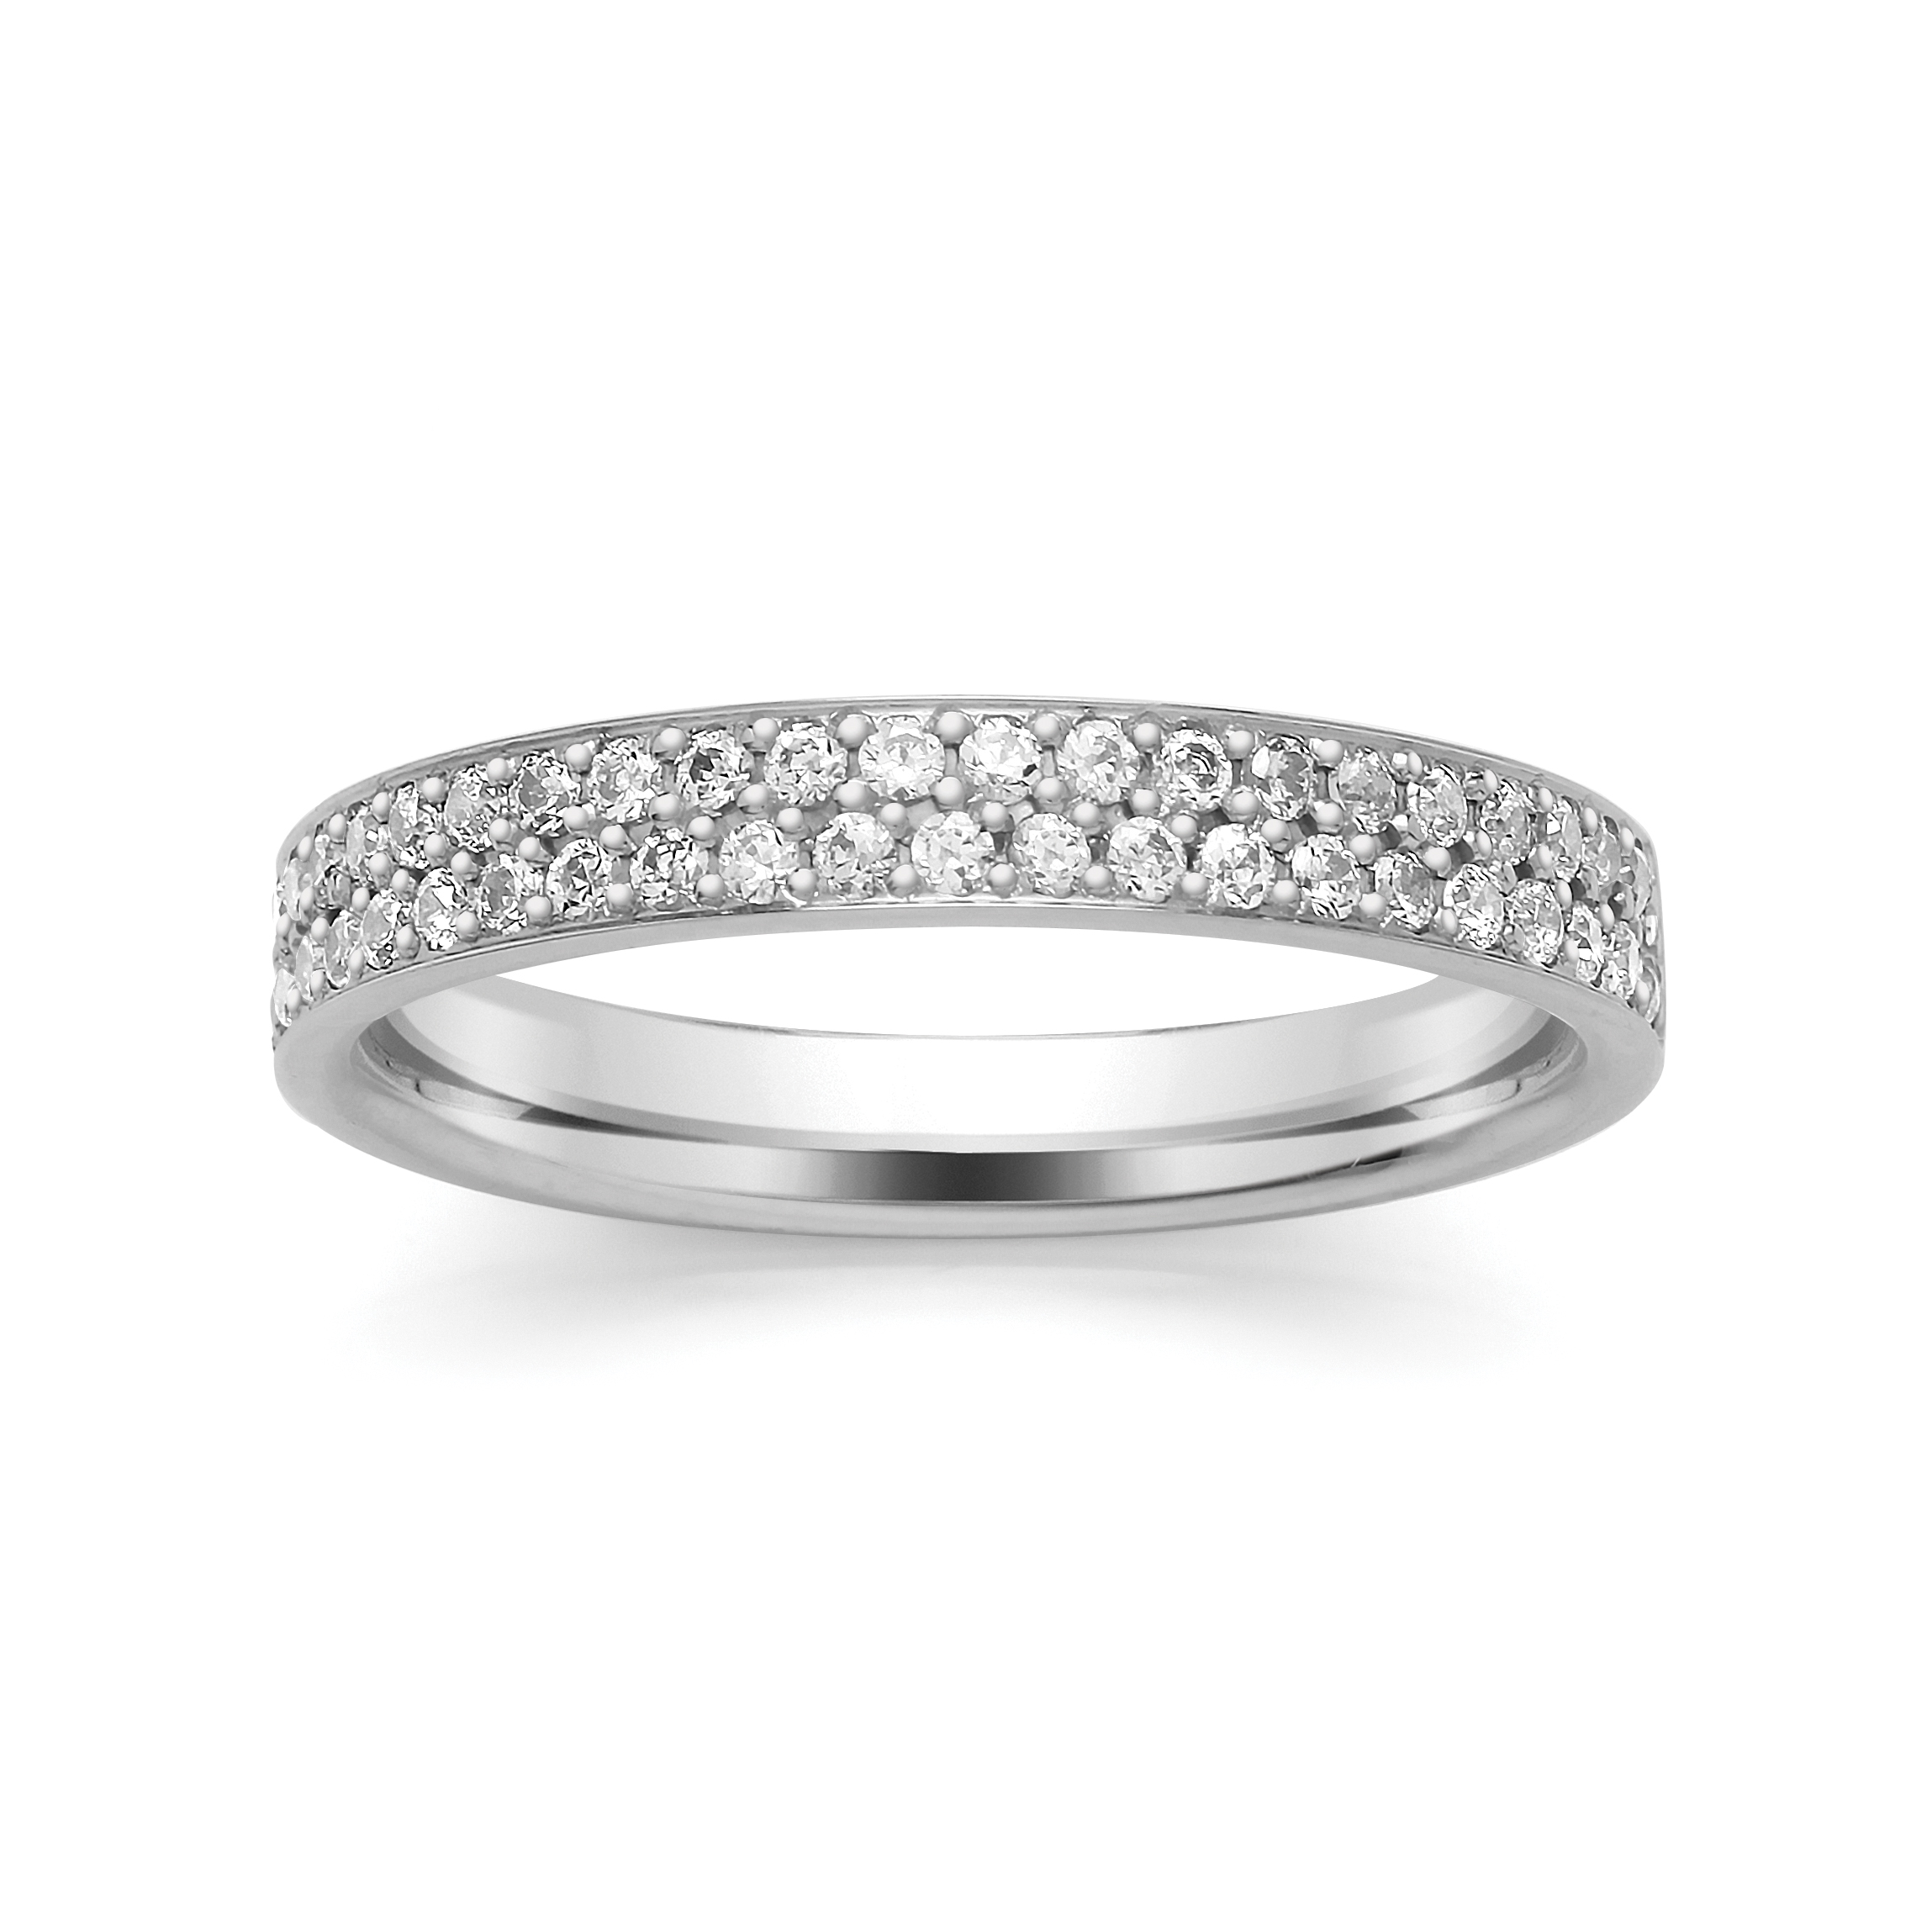 natural ladies rings diamond kmart jewelwesell anniversary bands stackable we sell solid jewel size wg cut net dia wedding src band prod ring a gold b round jewelry promise